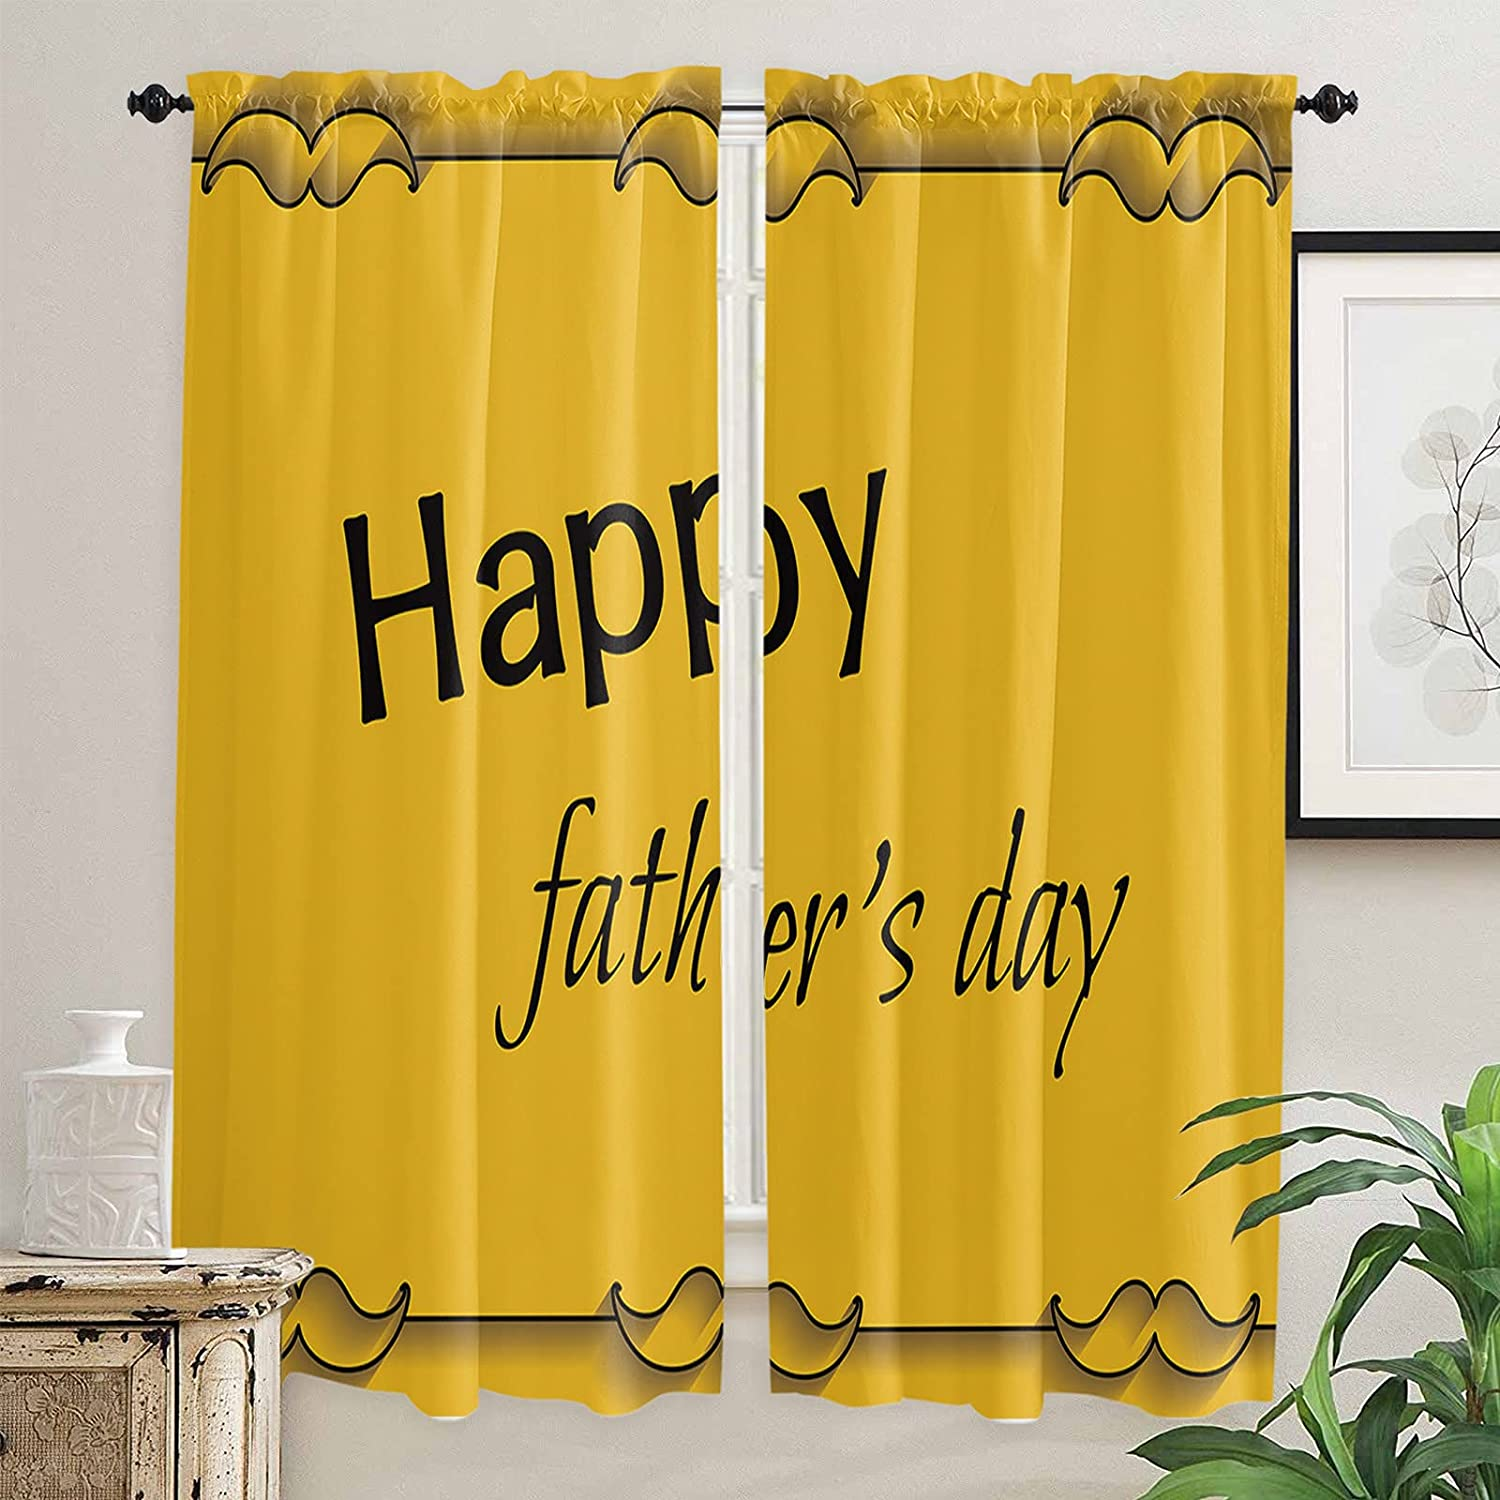 Popular brand in the world Yellow Eye-catching Backdrop Black Beard Limited price Celebrate to D Father's